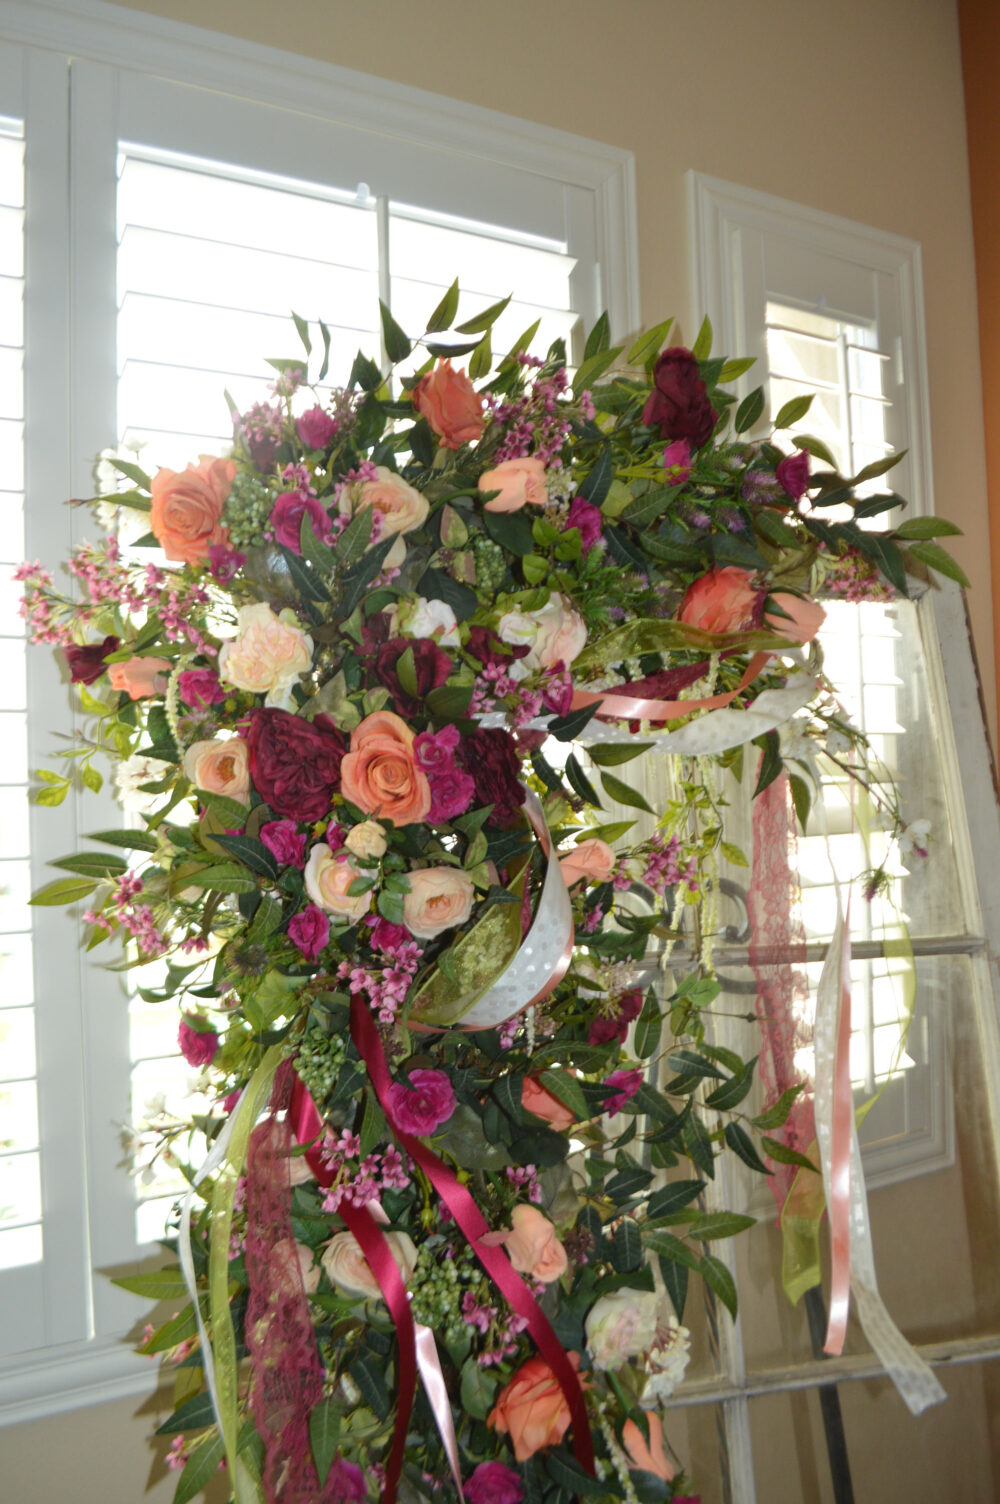 Wedding Arch, Archway Swag, Ceremony Arch Flowers, Peony Rose Arch, Peony Mantle Swag